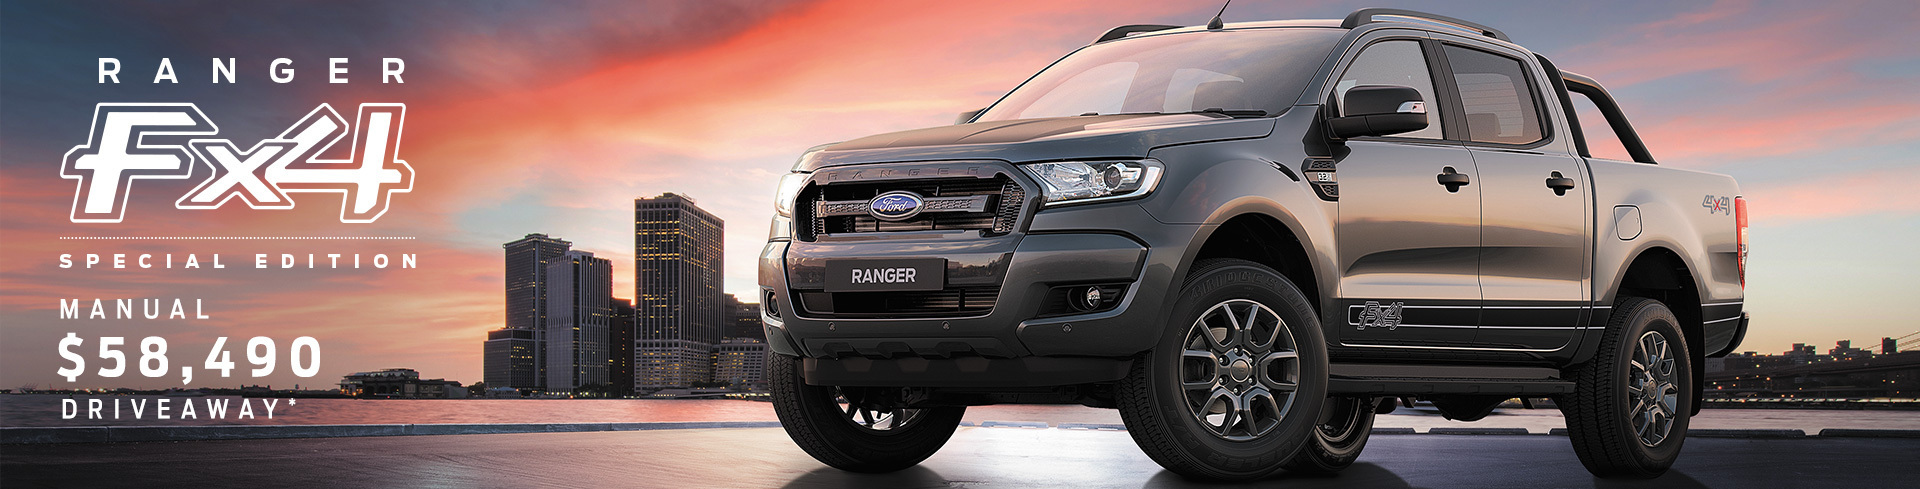 ranger special edition